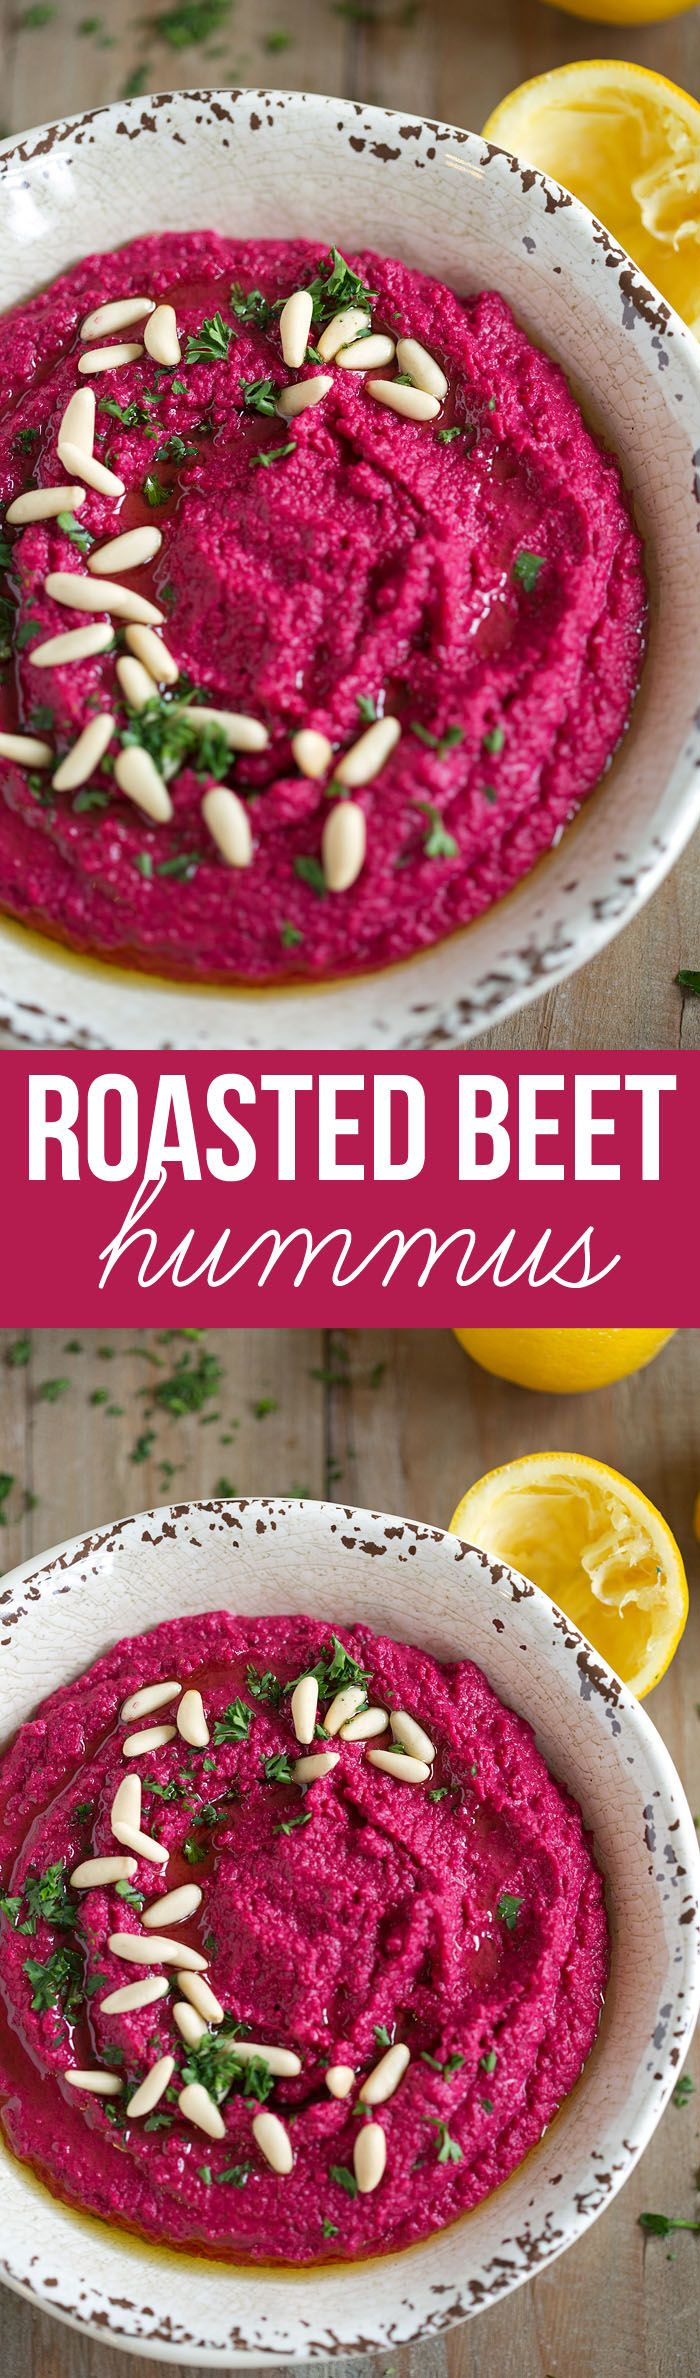 This Creamy Roasted Beet Hummus is gluten-free, dairy-free, vegan and a FAVORITE in our house! http://www.theeasierlife.com/articles/roasted-beet-hummus/